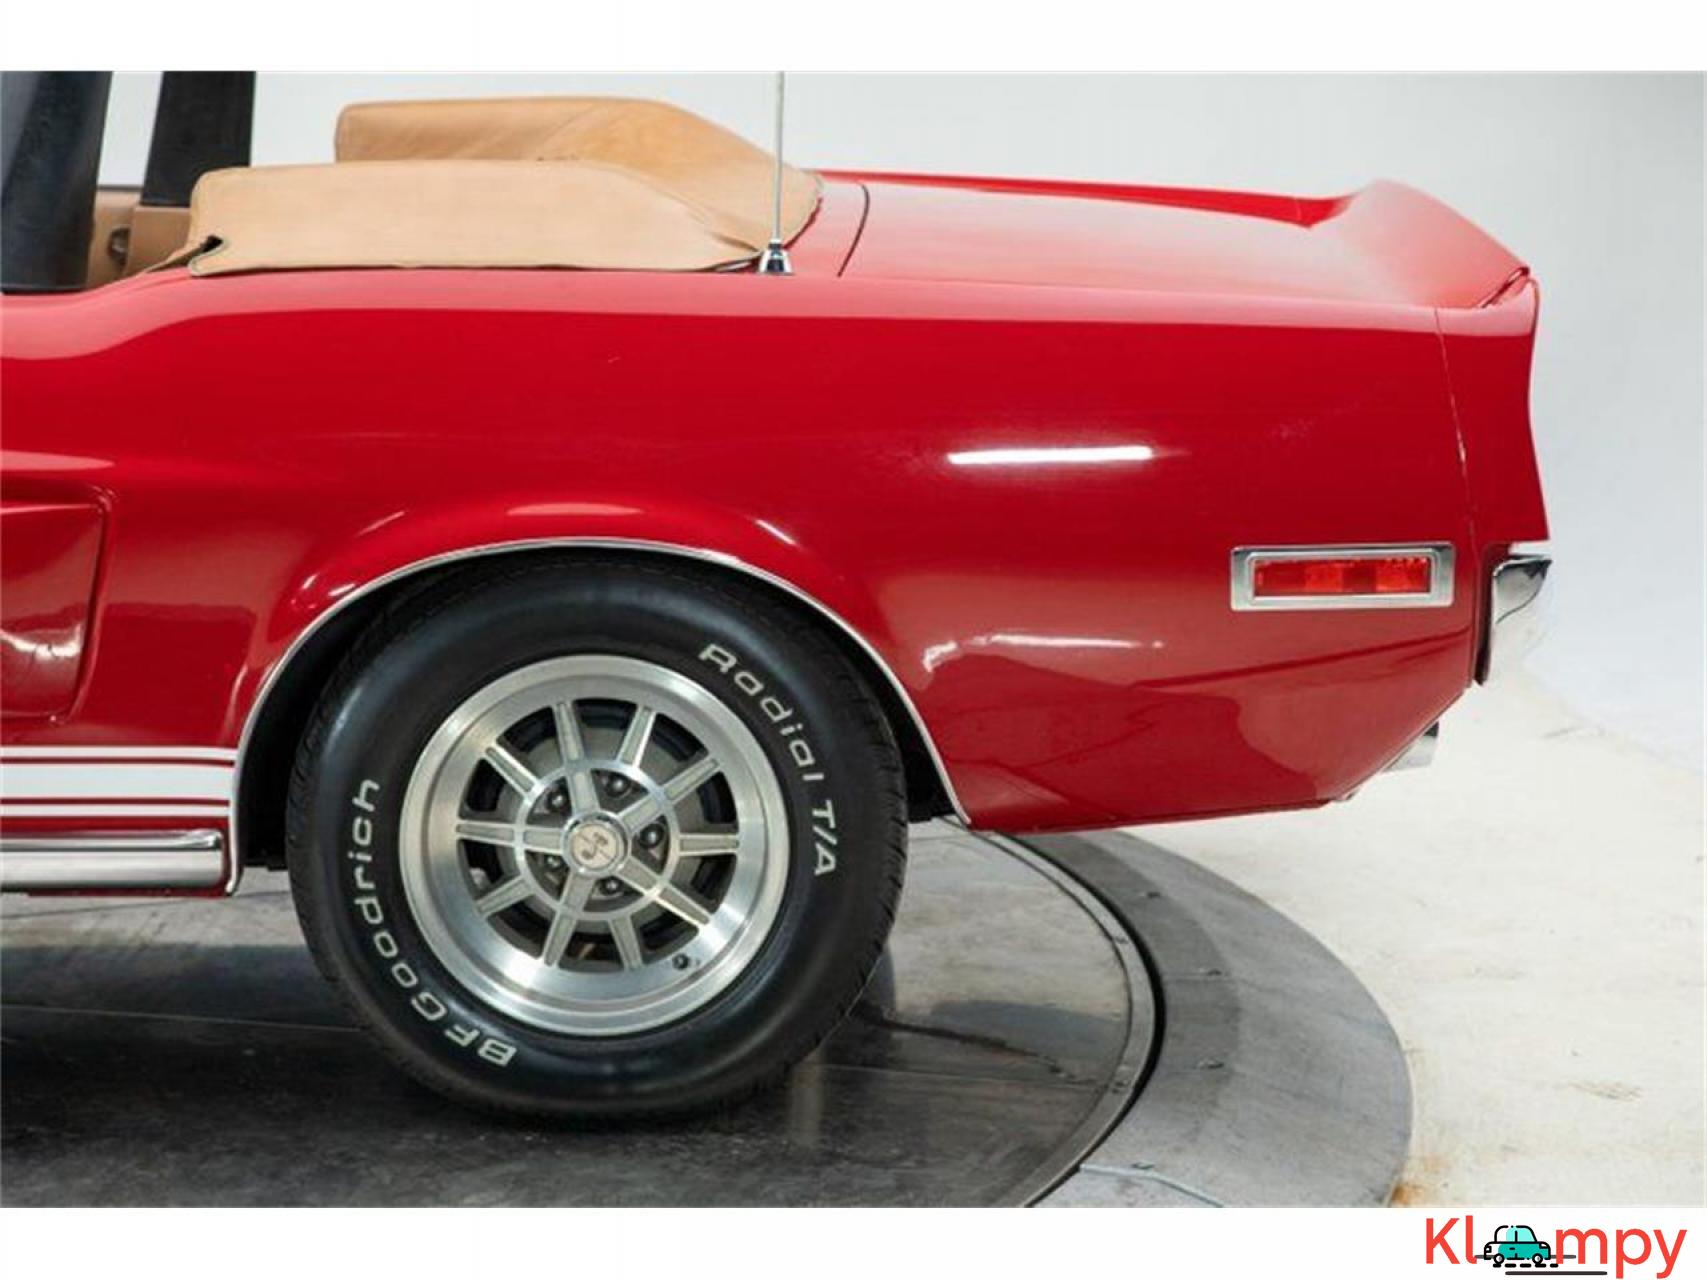 1968 Ford Mustang umbers matching 302 3 speed - 4/20